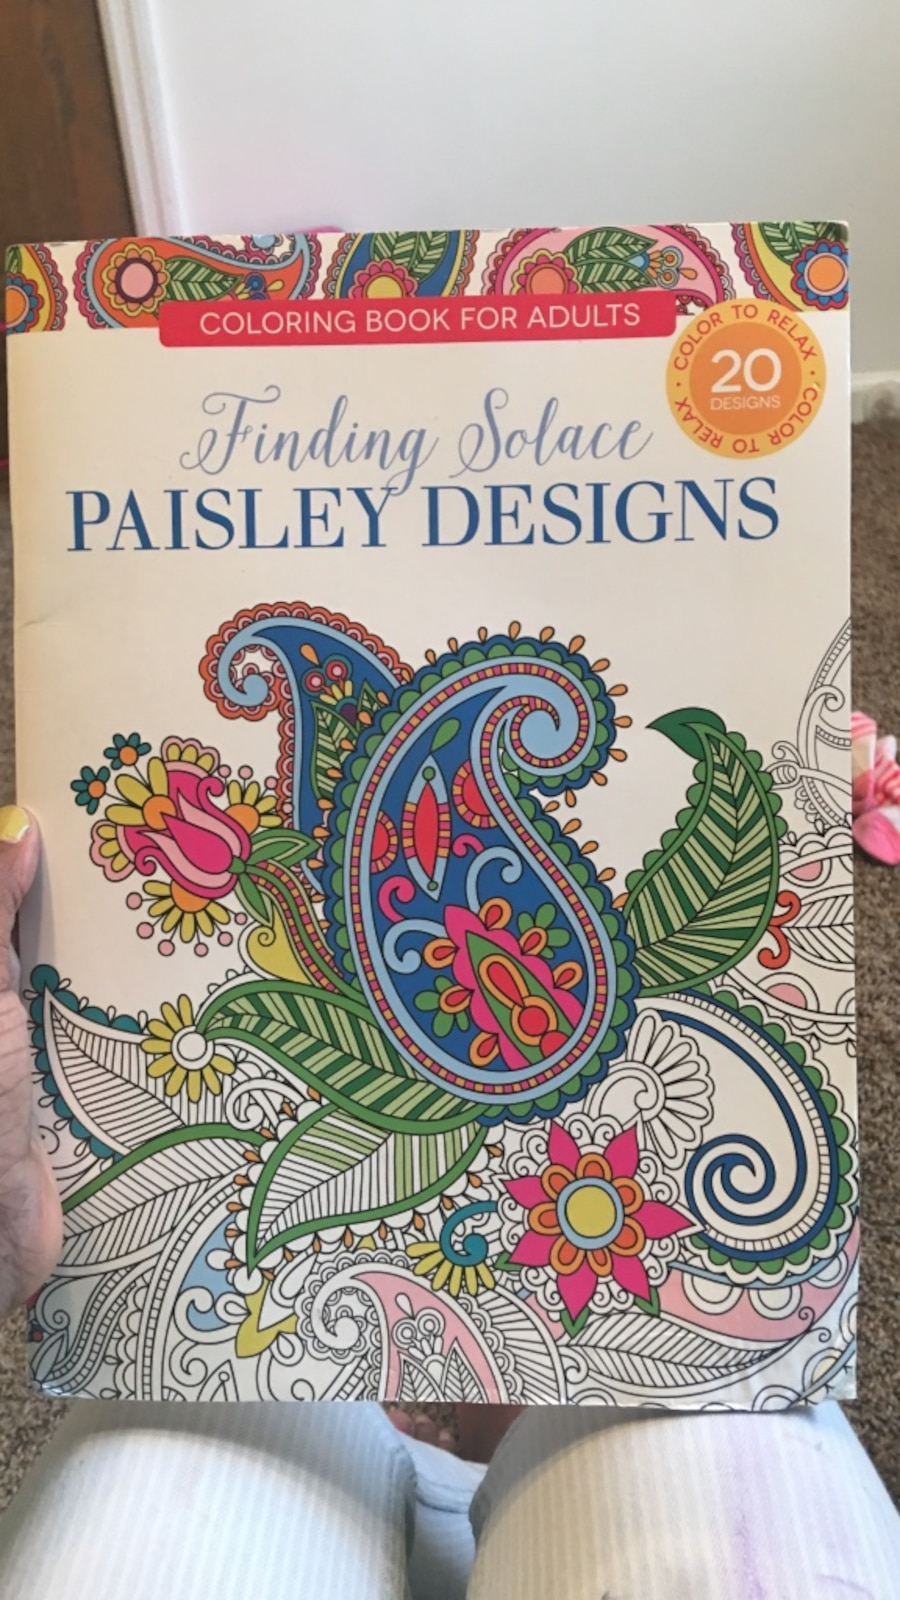 finding solace paisley designs coloring book for adults in mason letgo - Paisley Designs Coloring Book